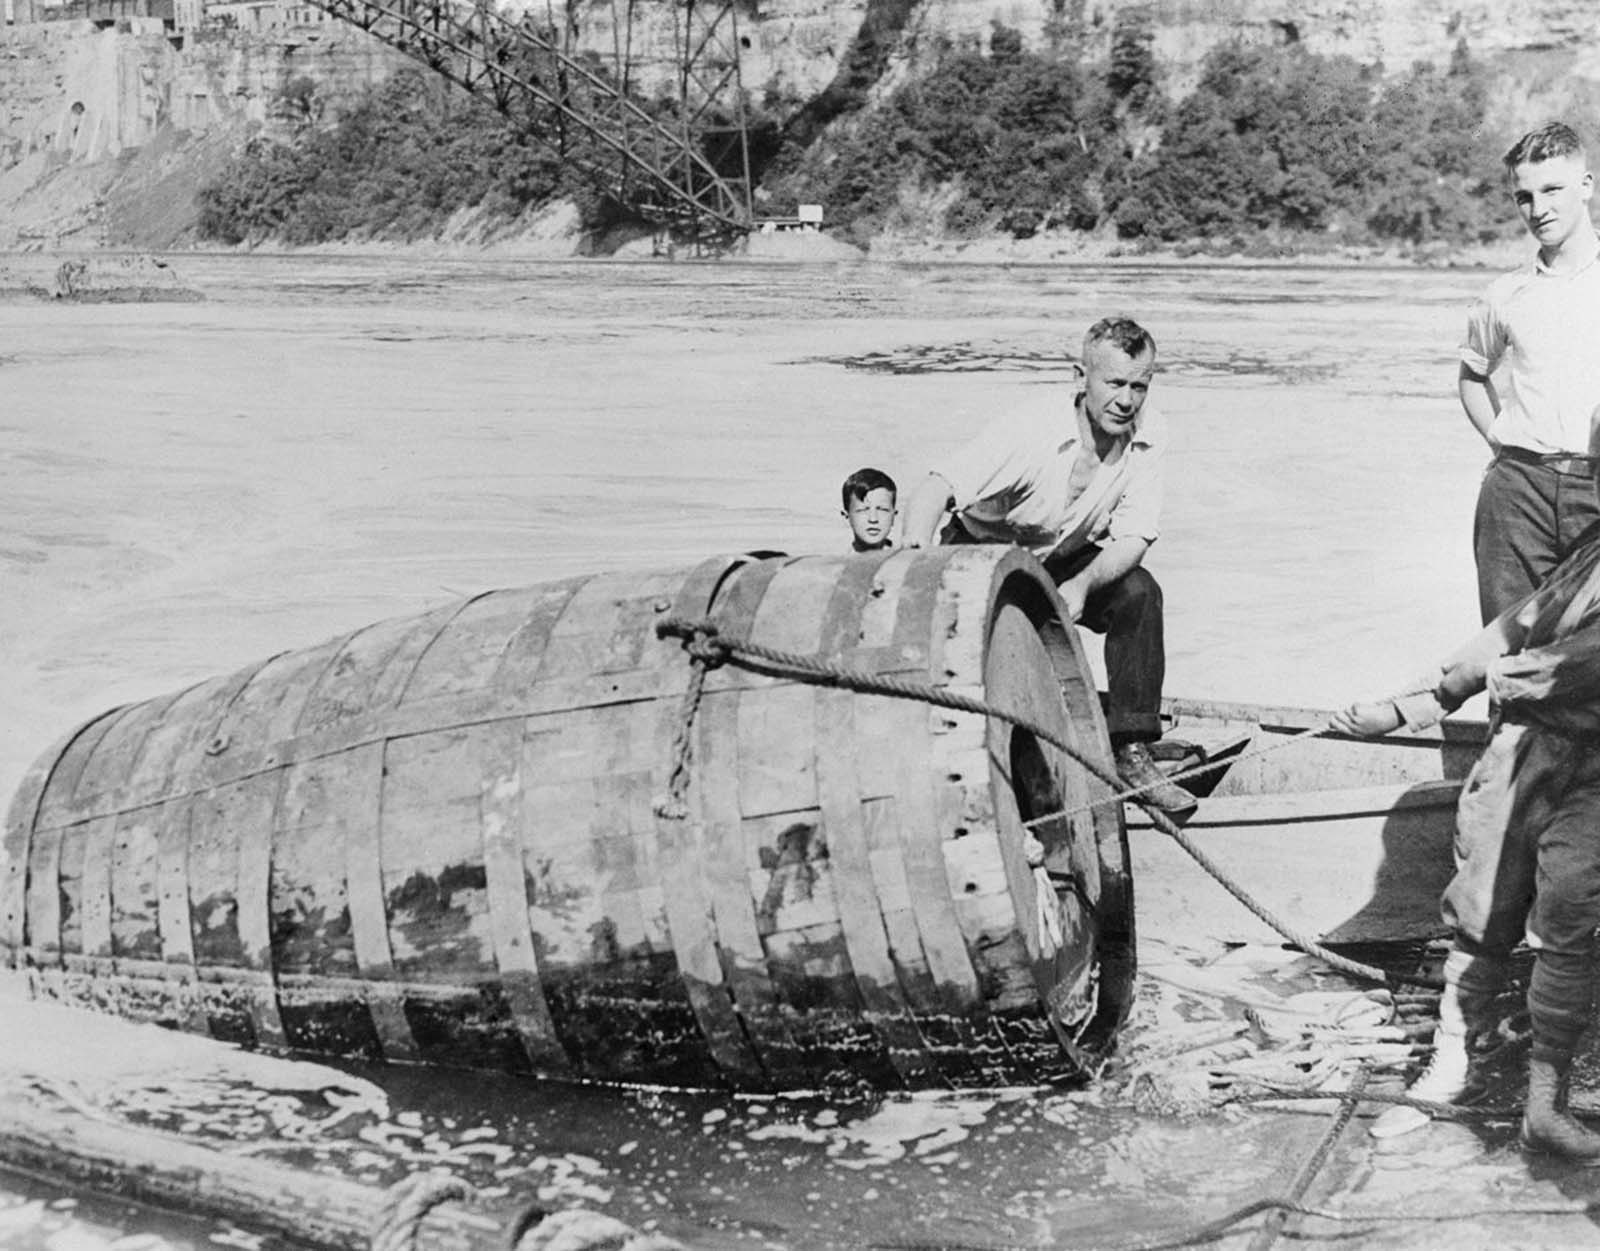 The body of George Stathakis is recovered from his one-ton barrel after going over the falls and becoming trapped for more than 18 hours. 1930.